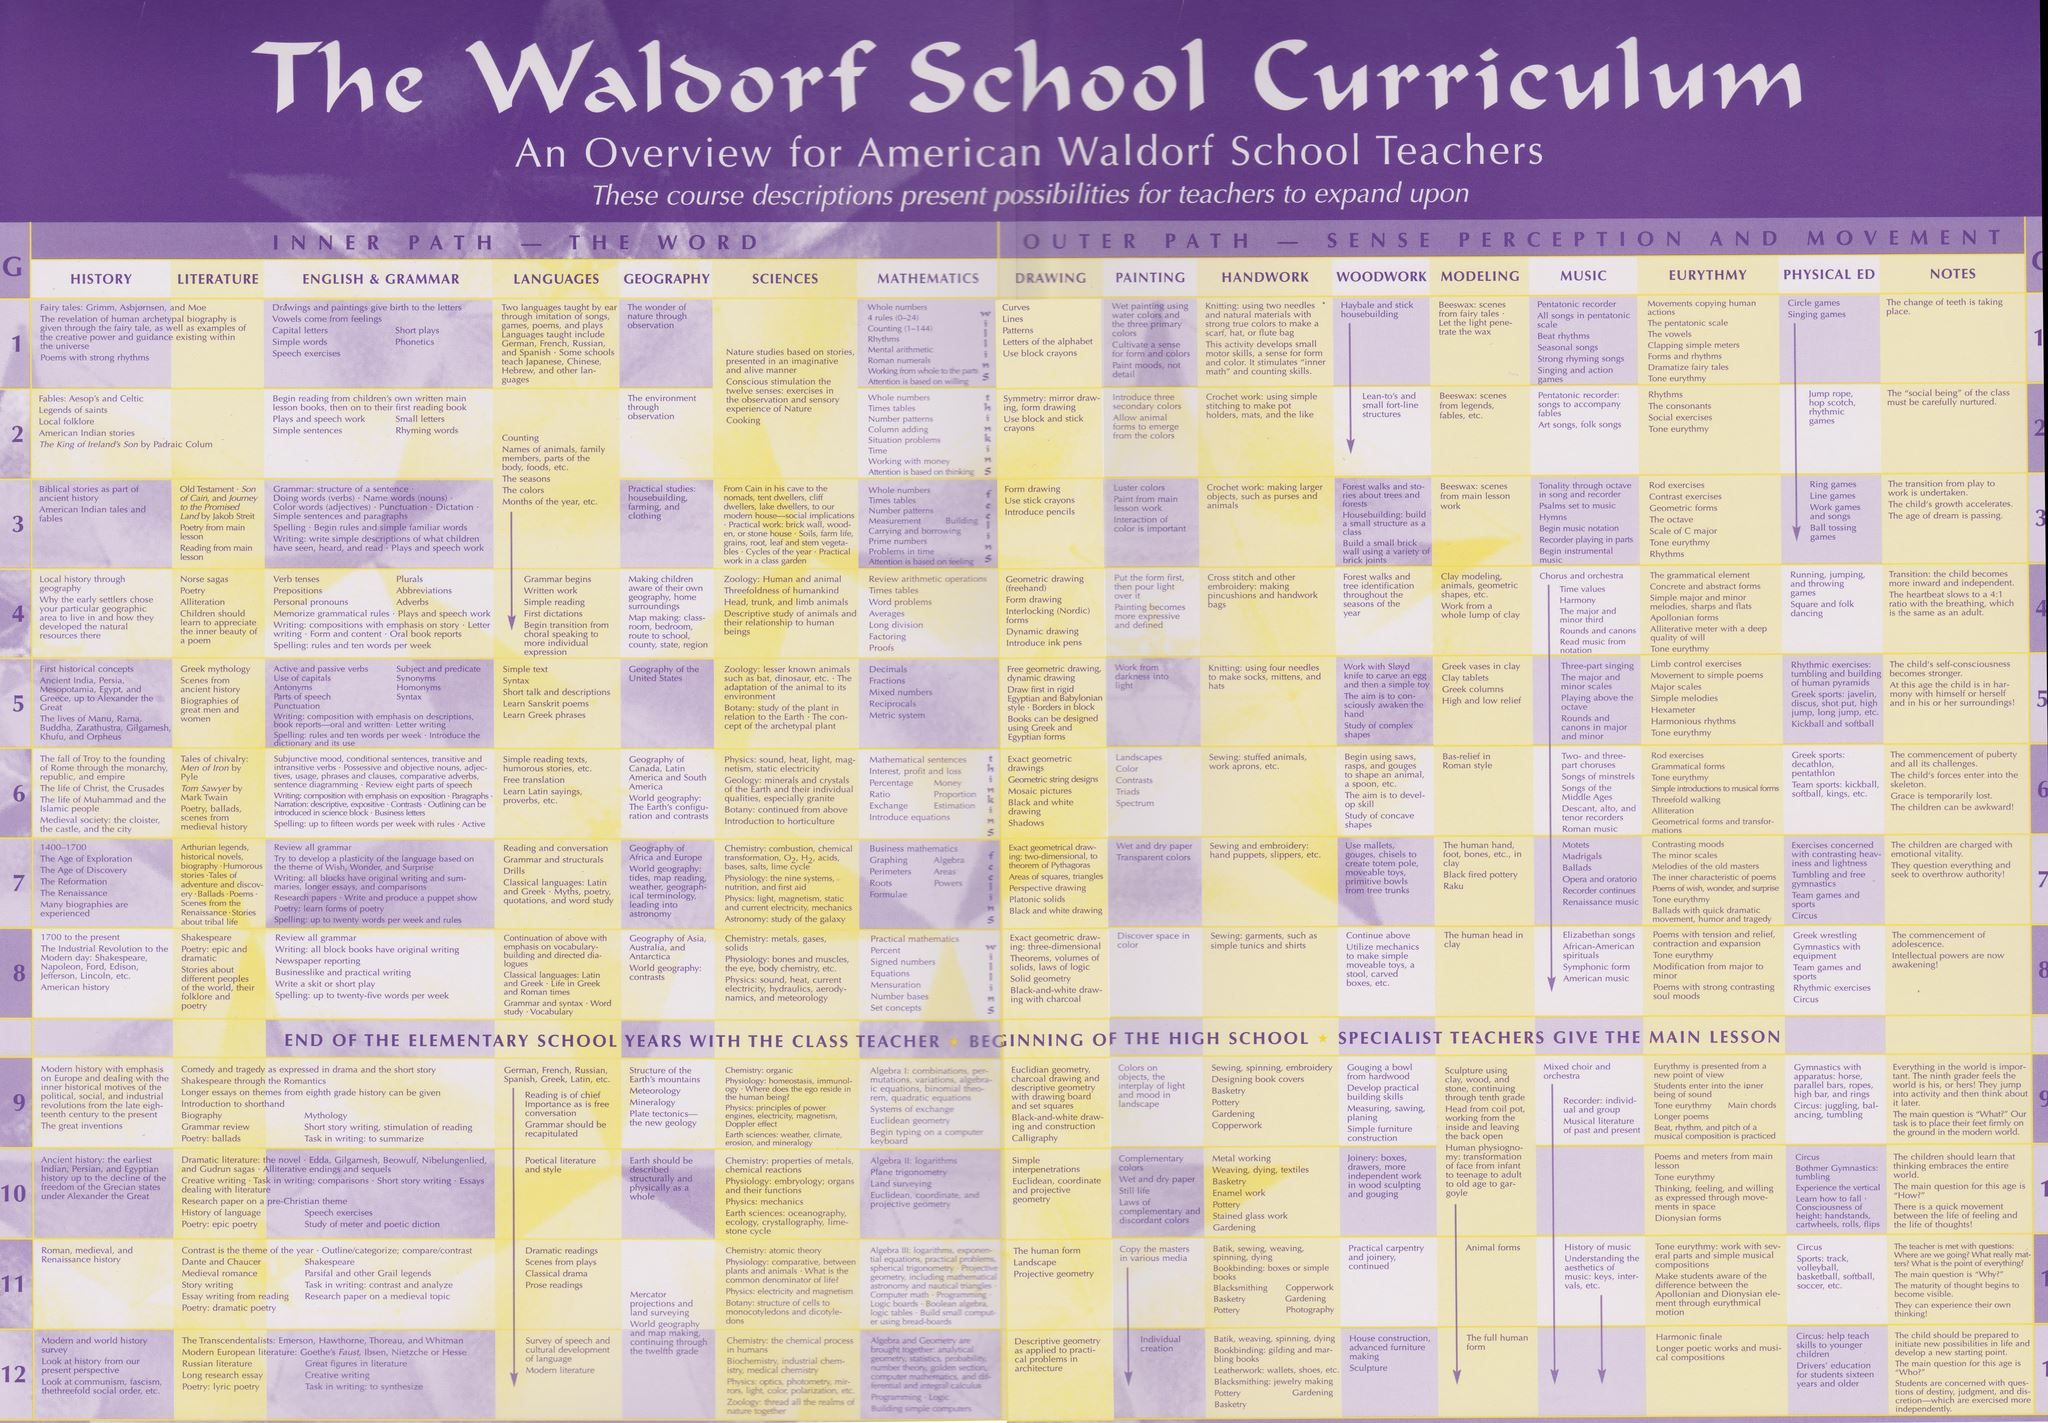 Waldorf Curriculum Outline Detailed For All Grades From The Research Institute For Waldorf